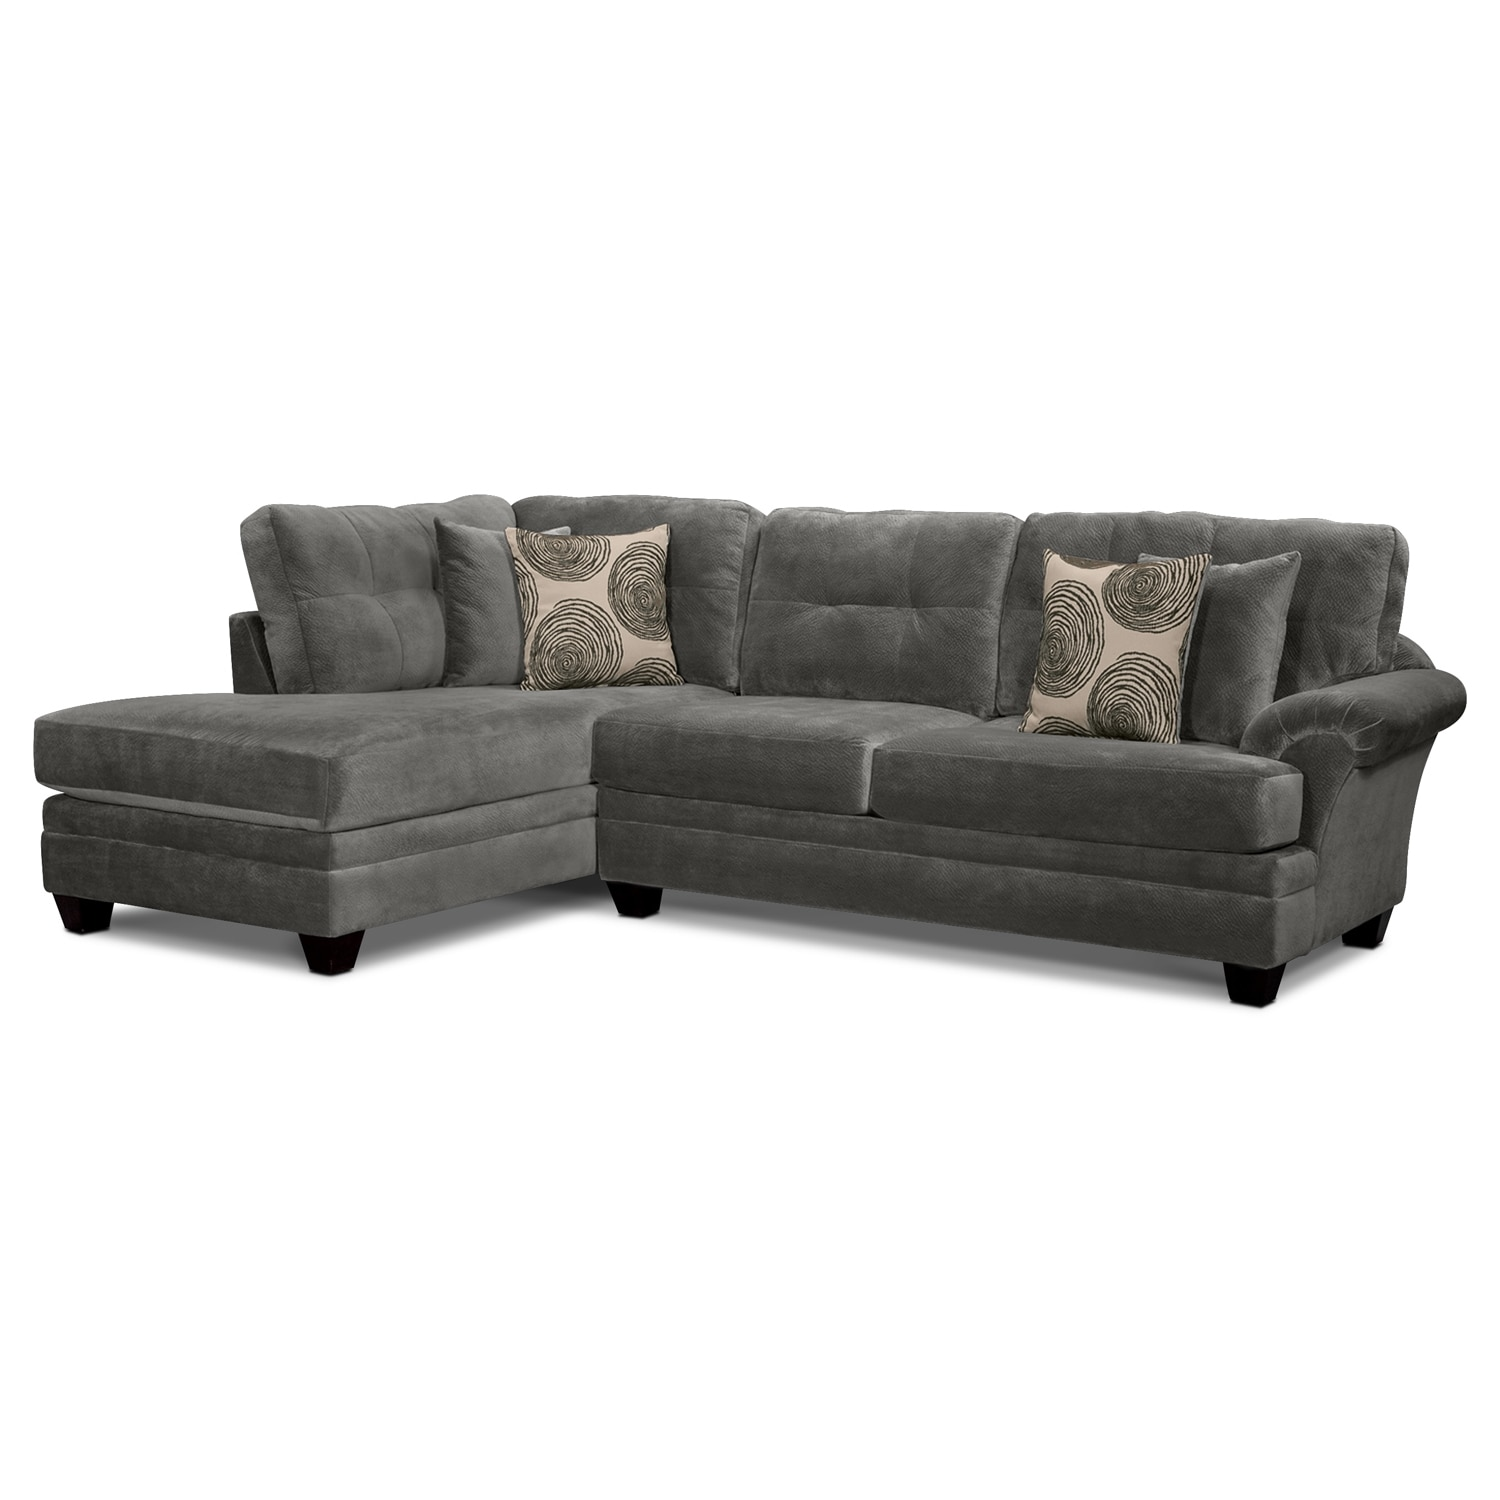 Living Room Furniture - Cordelle 2-Piece Left-Facing Chaise Sectional - Gray